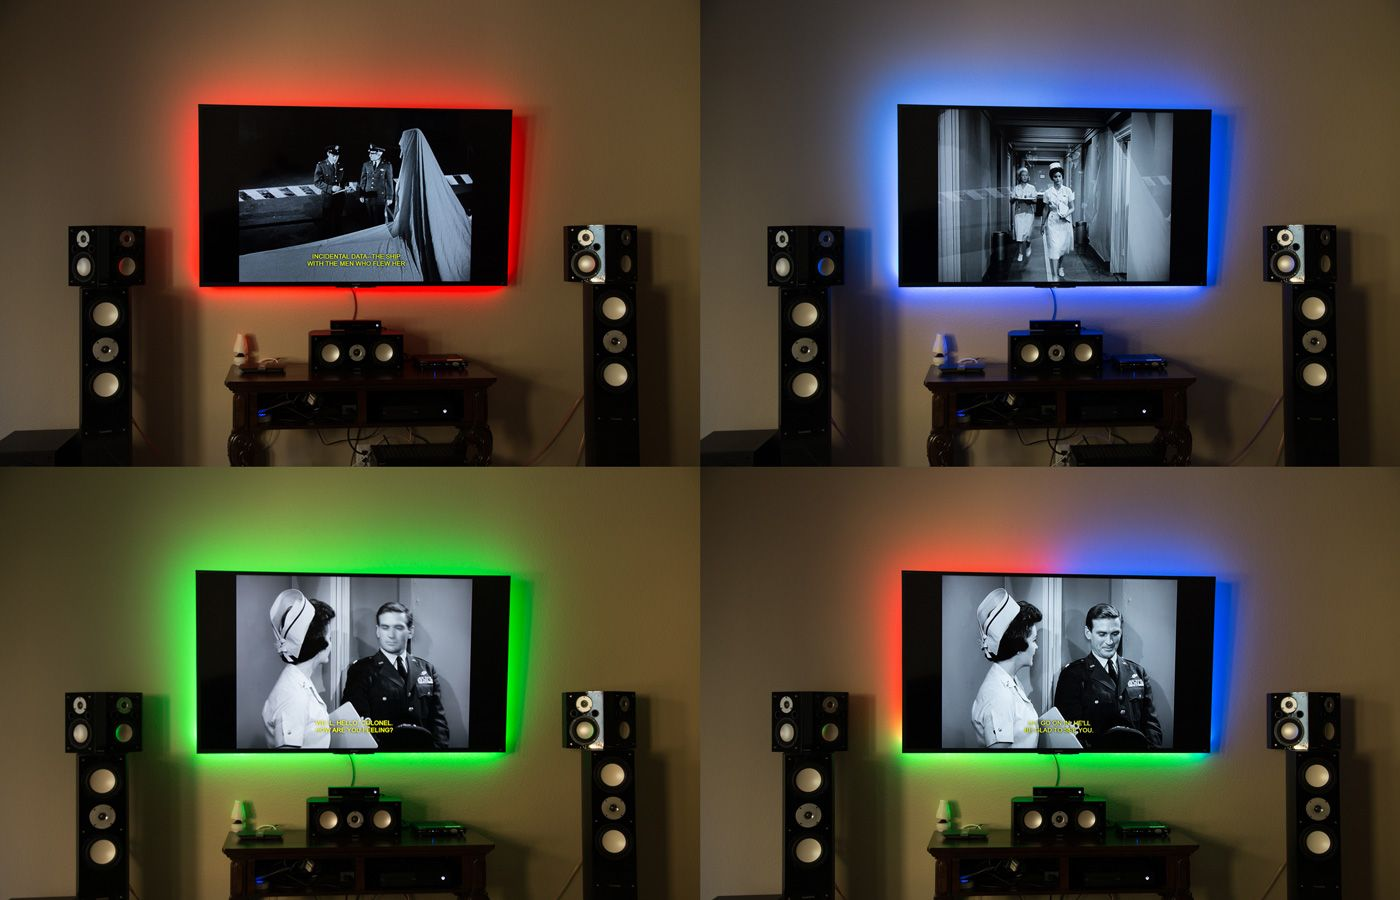 Anyone Have Any Experience With The Phillips Hue Bulbs I Am Going To Try Putting One Behind My 65 Inch Tv Add A Bit Of Ambient Light But Not Sure